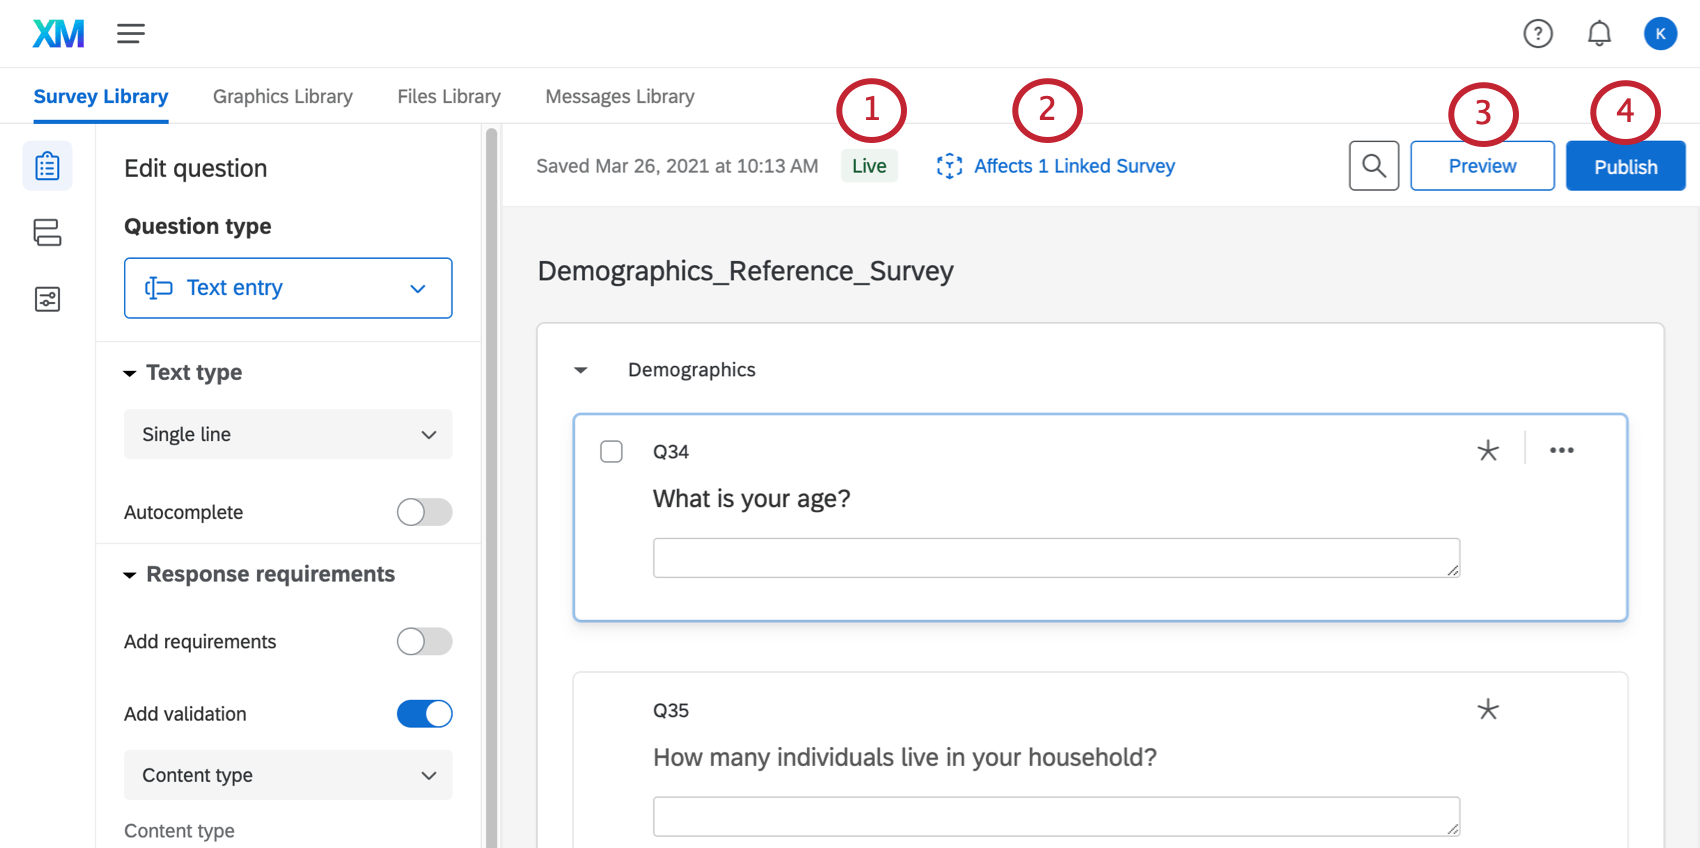 Along the top of the survey builder for a reference survey, the following buttons: